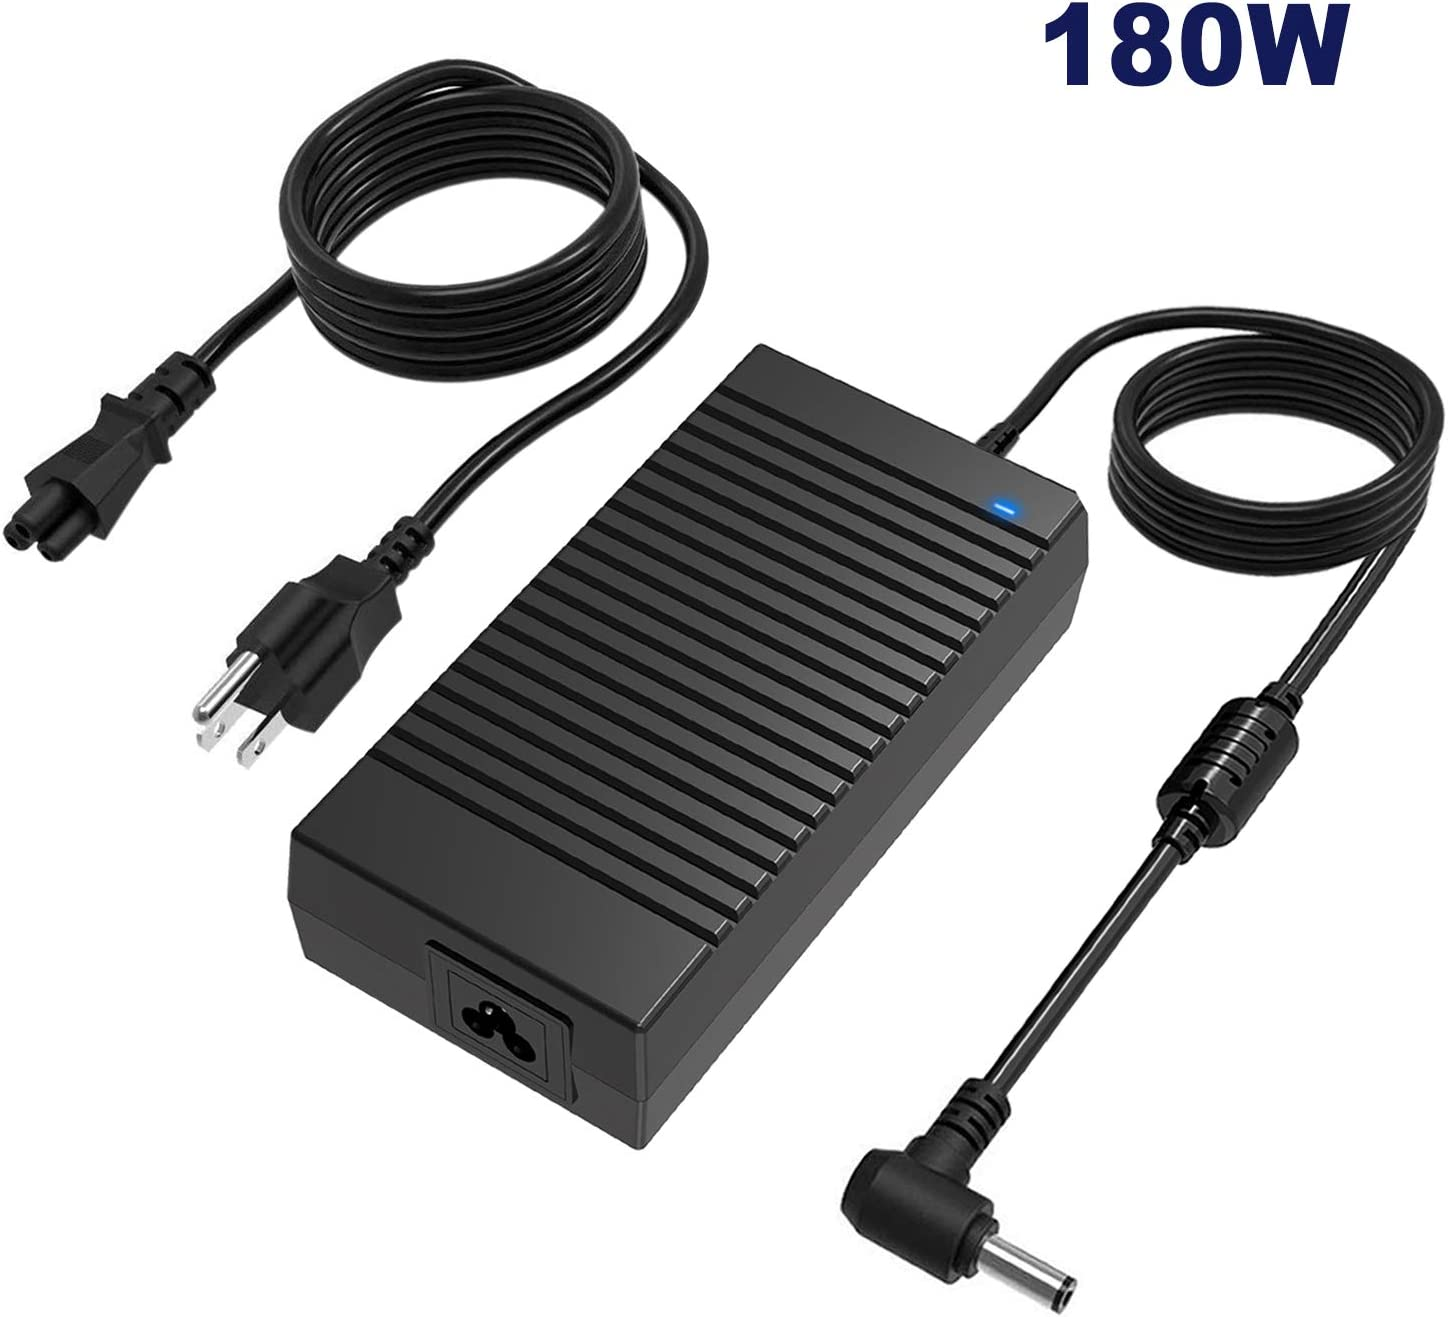 180W Asus Rog Laptop Charger,19V 9.5A 180W Asus Rog Power Adapter Compatible Asus Rog G55 G55VW G46VW G70 G75 G75VW G75VX A53 A53S G750JM G750JS G750JW G750JX G751JL G751JM G752VL G752VT FX5